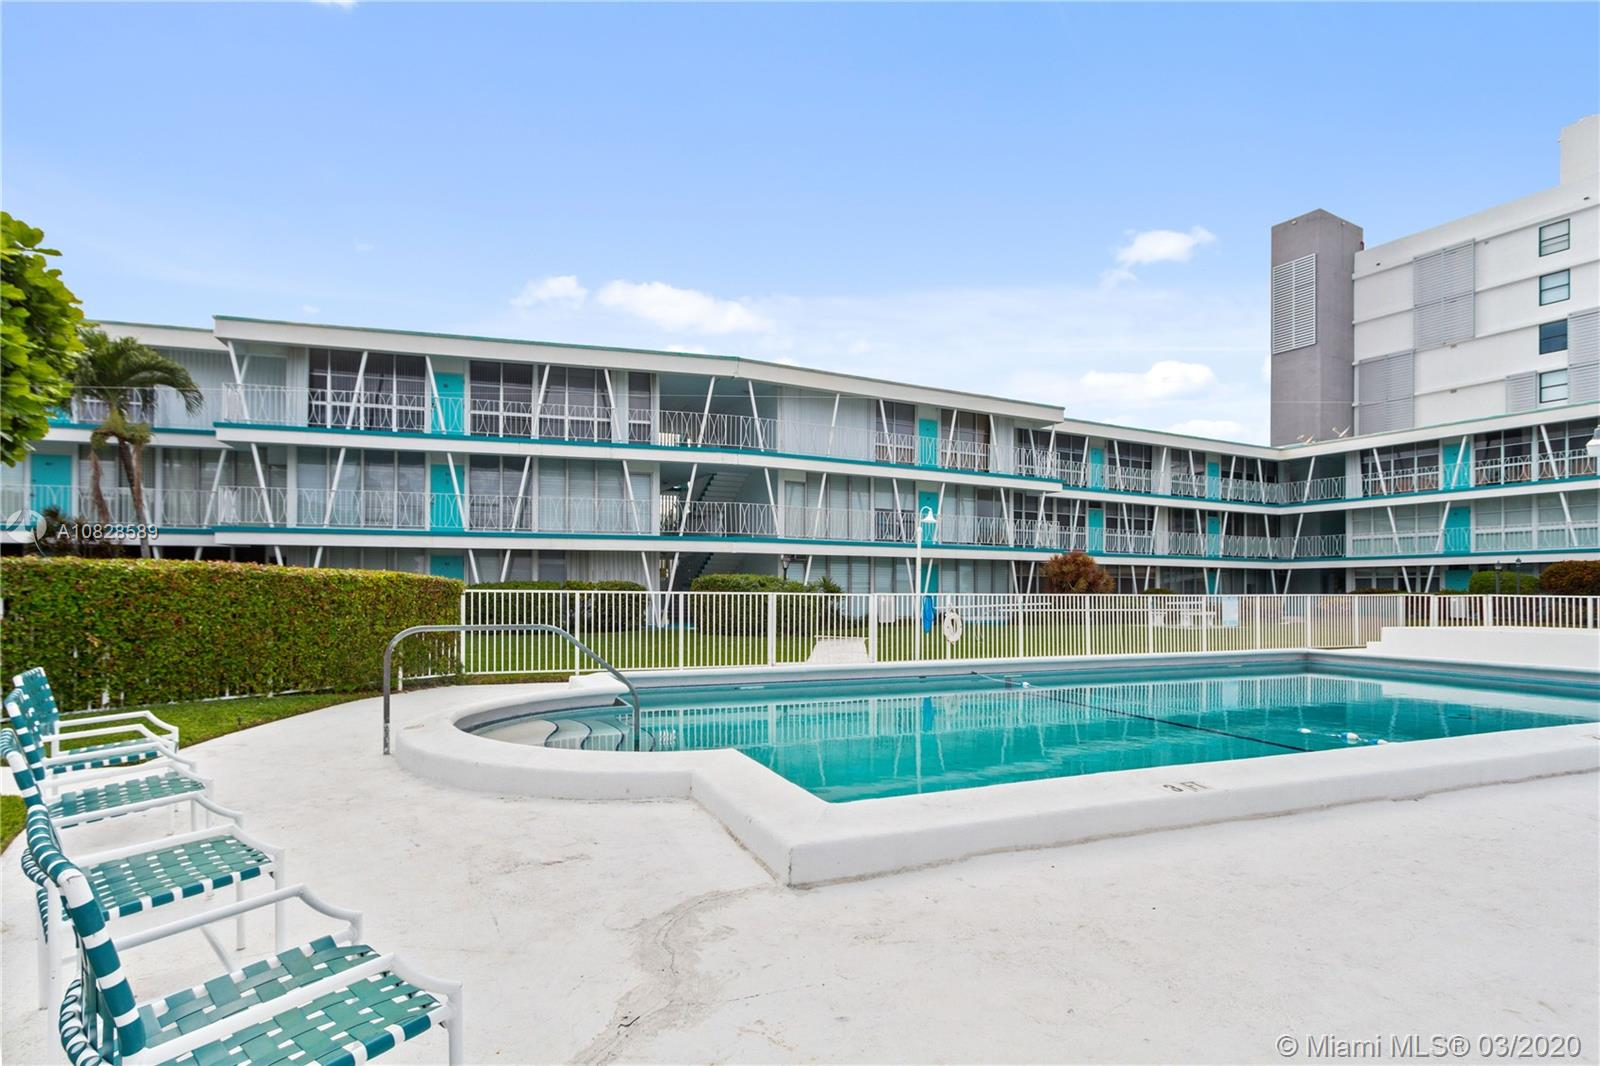 Excellent Opportunity to Own in Bay Harbor Islands.  Boutique Building situated on Intracoastal.  Unit offers Two Bedrooms, Two Baths with Beautiful Views of the Garden, Pool and Intracoastal.  Walk to Bal Harbour Shops and Restaurants.  Beach is just blocks away.  Dock space is Available for Unit Owners.  Enjoy the peace and tranquility this property affords.  Furniture is Included in the Sale with the Exception of Computers and ALL Art Work in the Apartment.